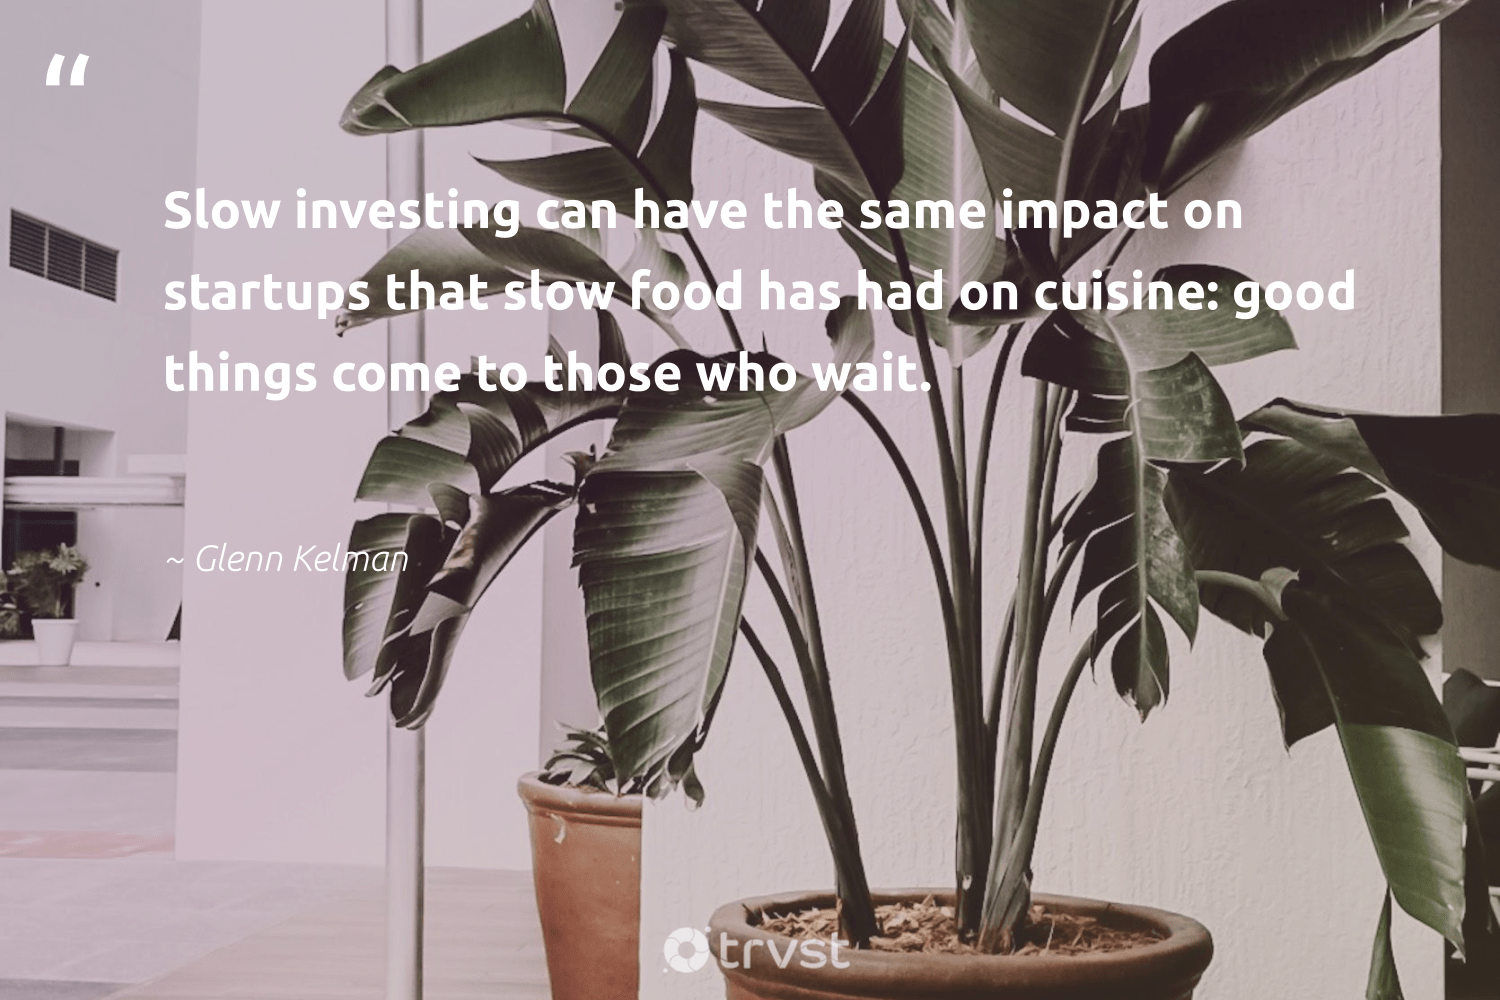 """Slow investing can have the same impact on startups that slow food has had on cuisine: good things come to those who wait.""  - Glenn Kelman #trvst #quotes #impact #food #hunger #giveback #equalrights #collectiveaction #foodforthepoor #socialchange #inclusion #dotherightthing"